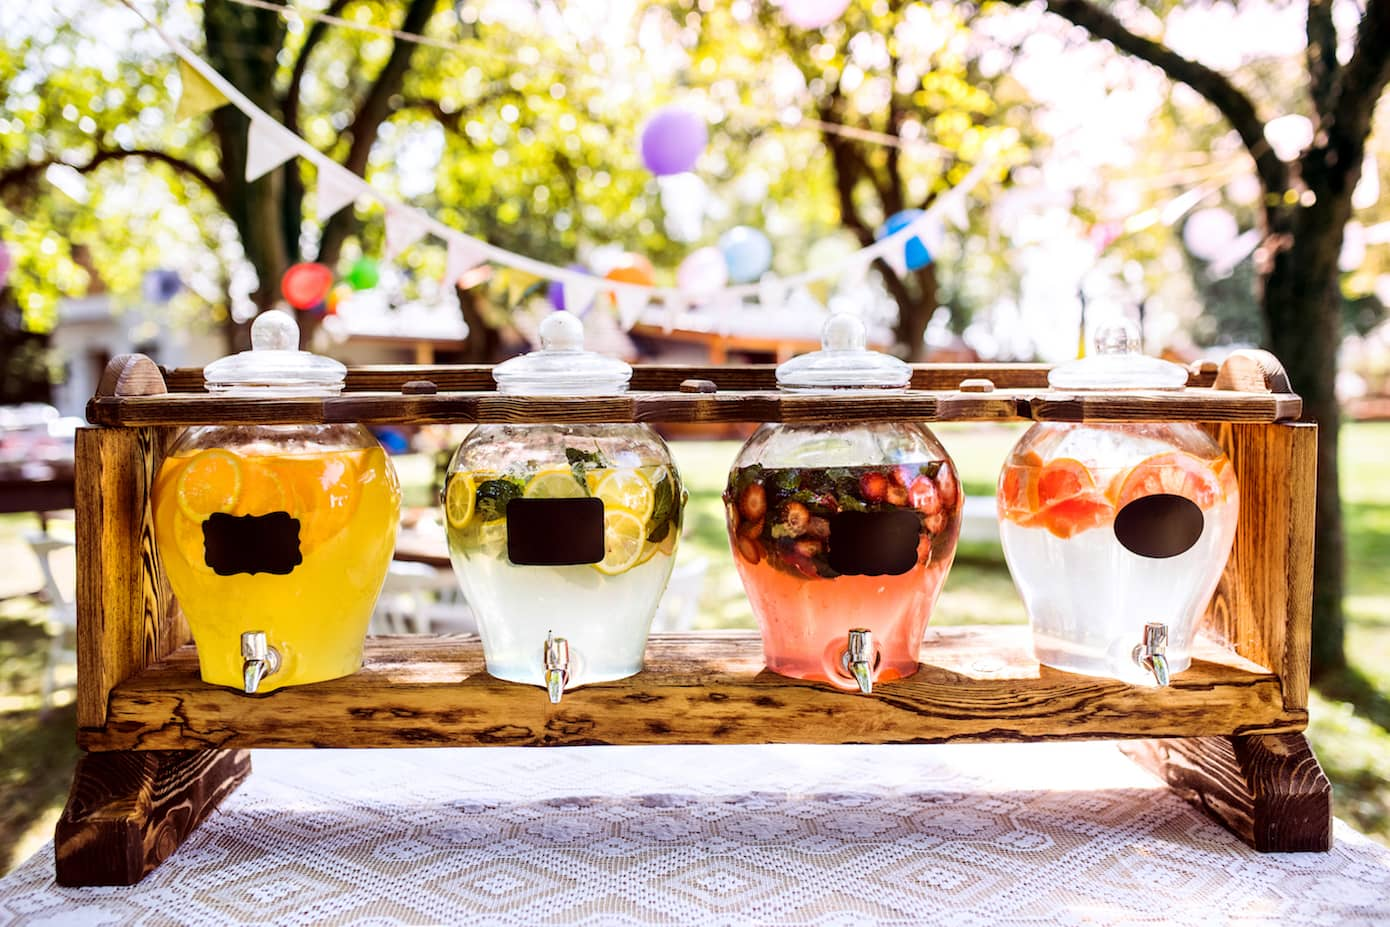 Party drinks served in glass dispensers at outdoor kids party